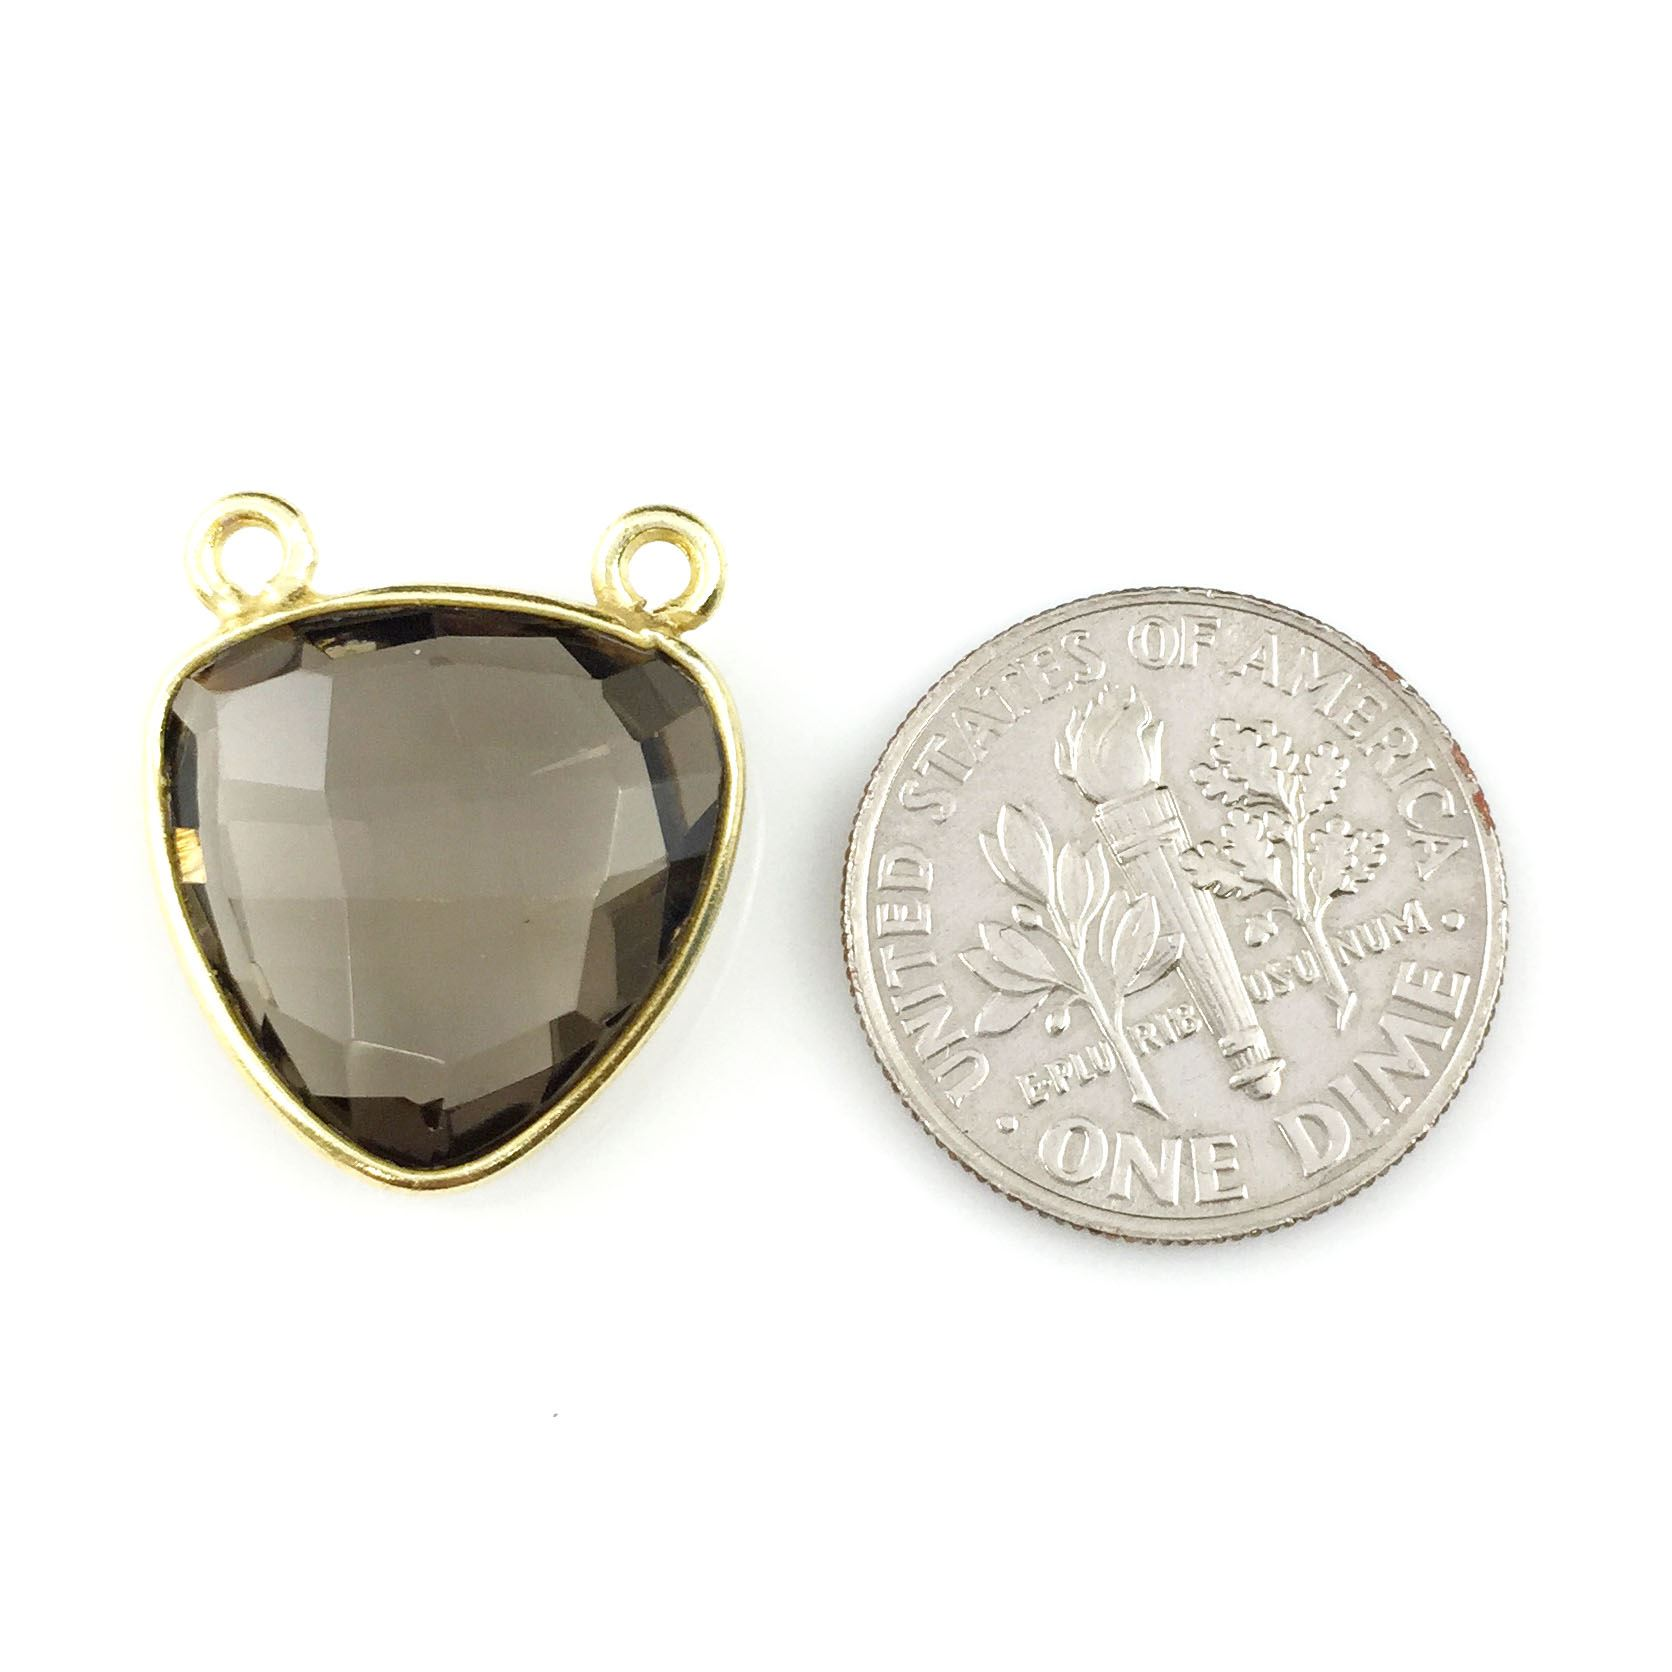 Bezel Gemstone Connector Pendant - Smokey Quartz - Gold plated Sterling Silver - Small Trillion Shaped Faceted - 15mm - 1 piece